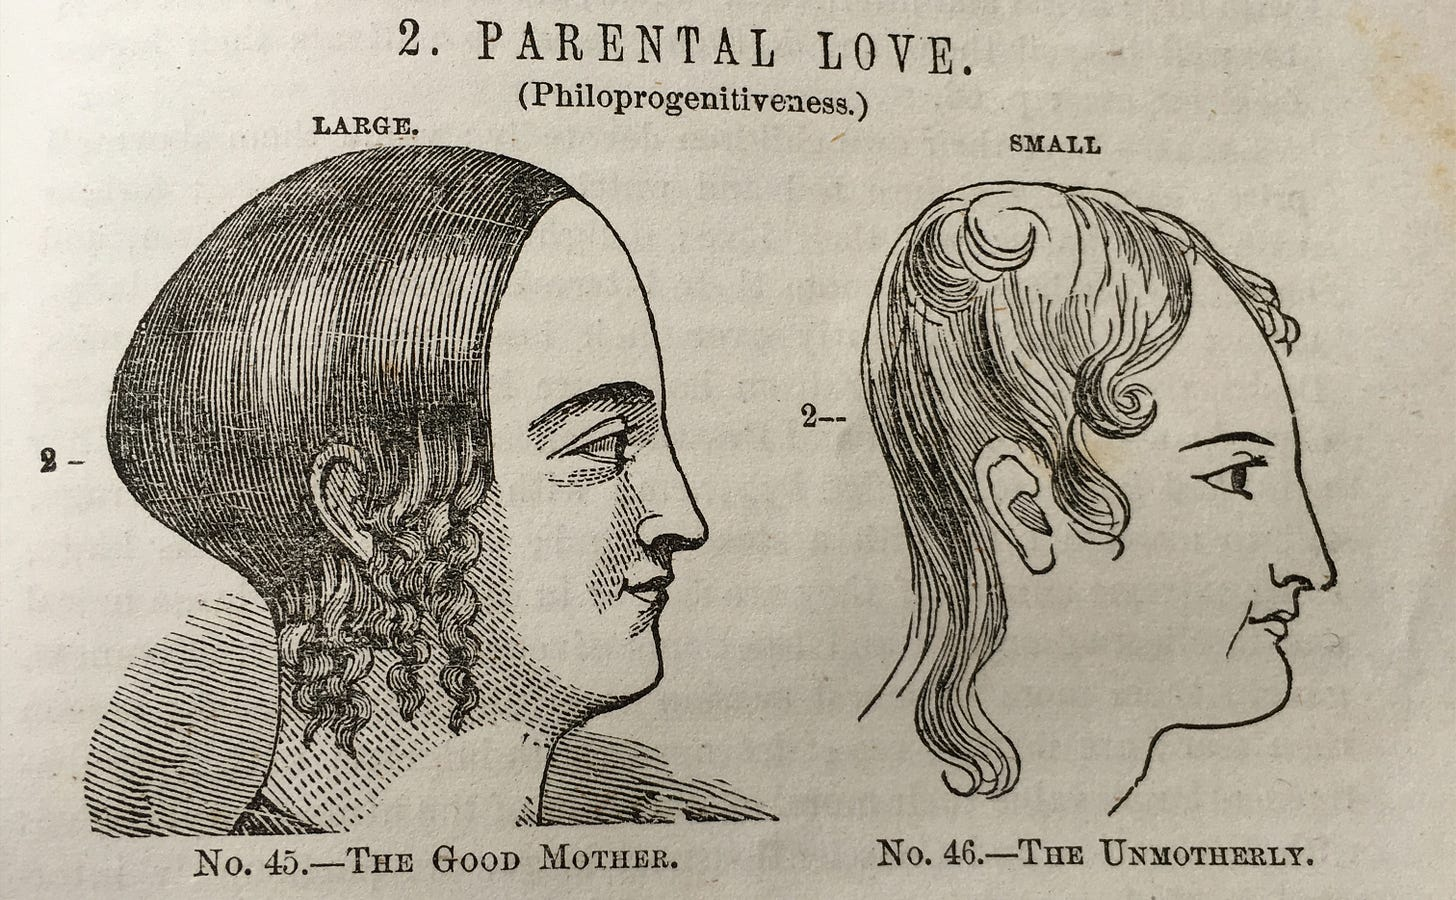 A phrenology diagram showing the heads of two women